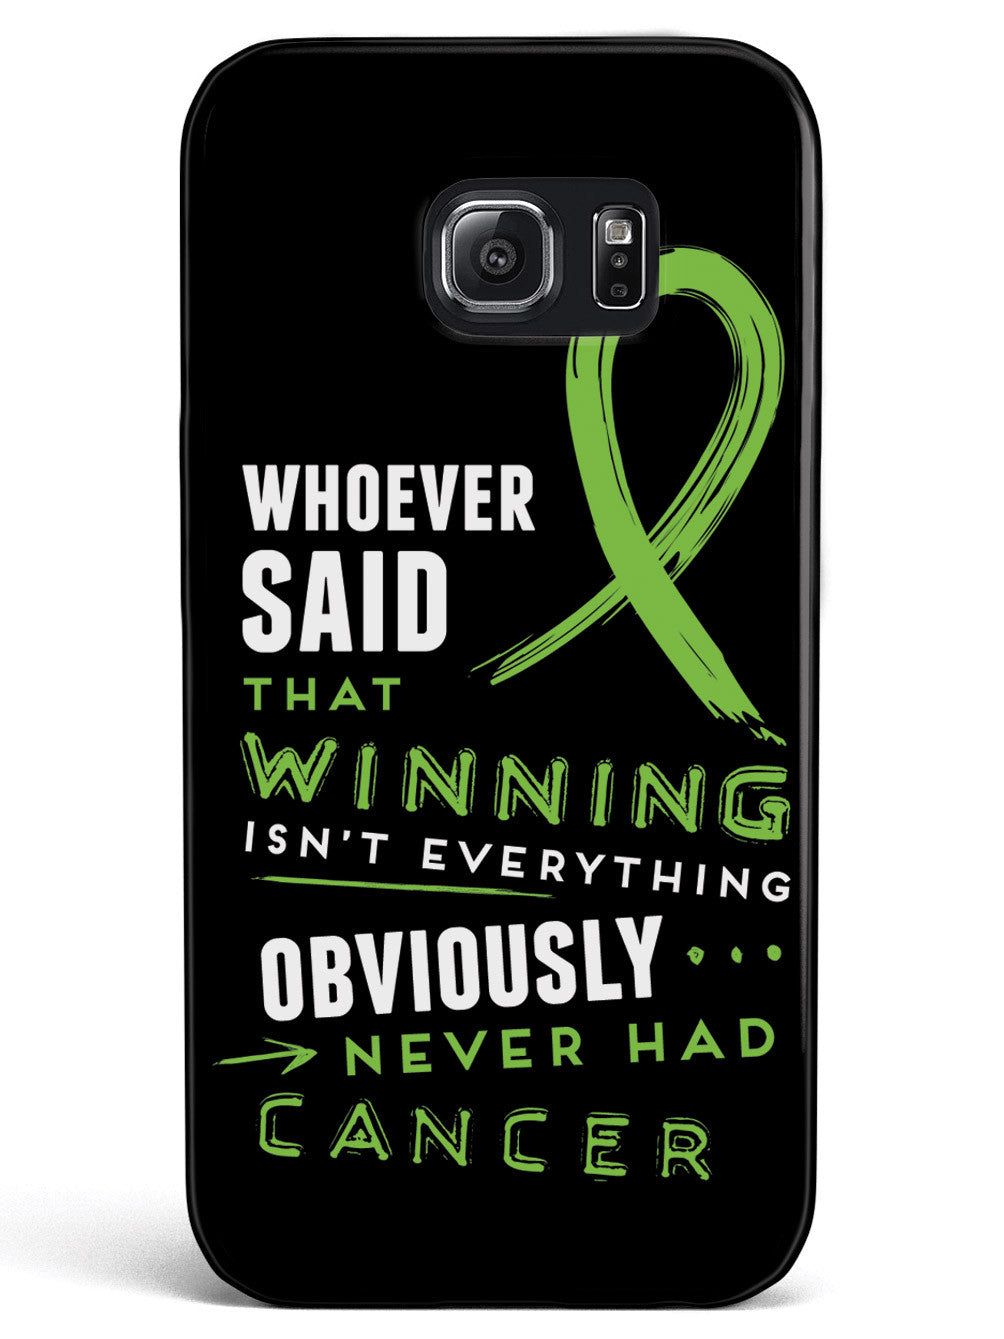 Winning is Everything - Cancer Awareness Green Case